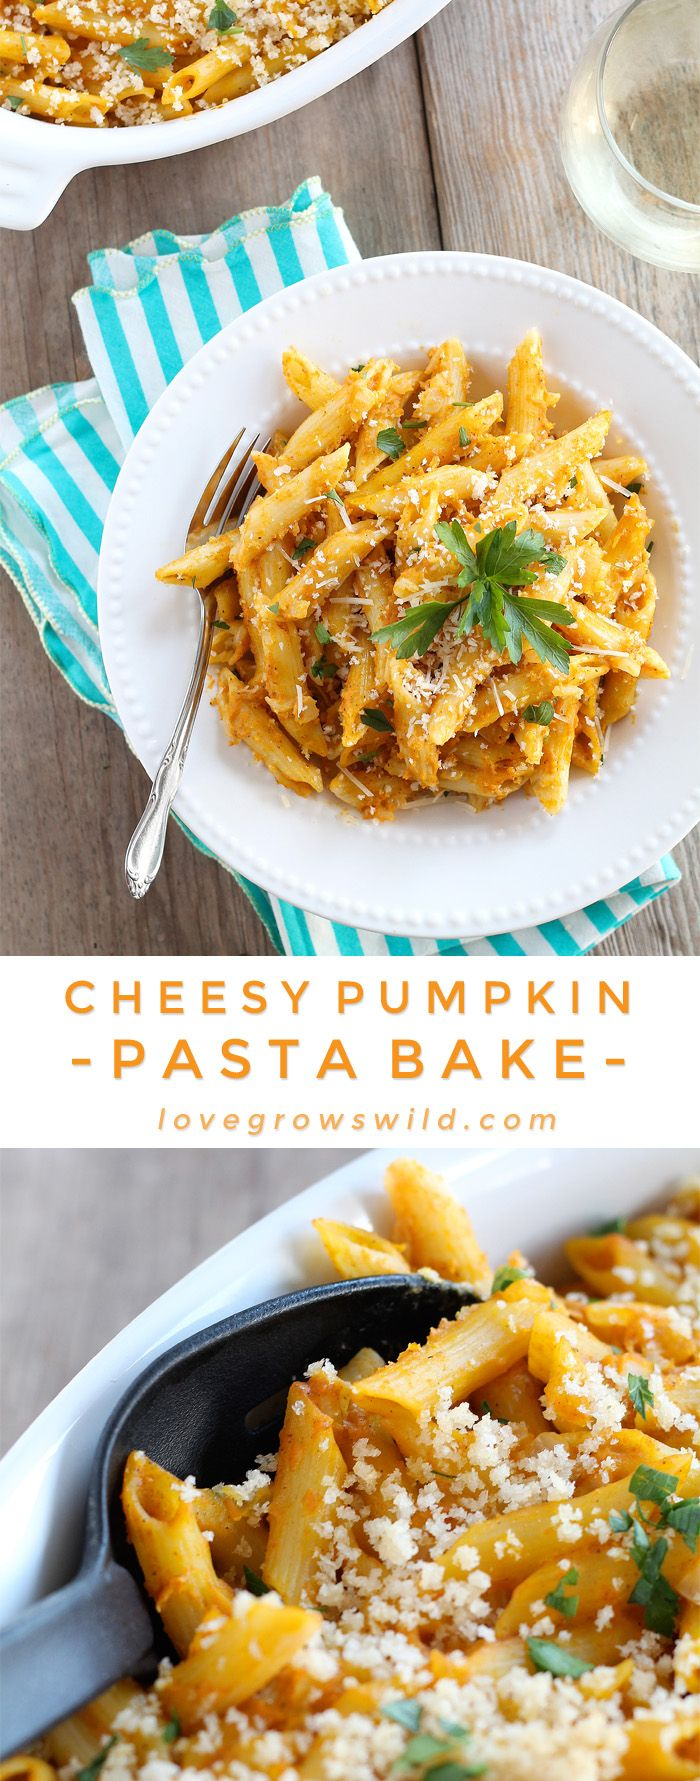 Pumpkin isn't just for dessert anymore! This Cheesy Pumpkin Pasta Bake is super creamy and SO delicious! | LoveGrowsWild.com